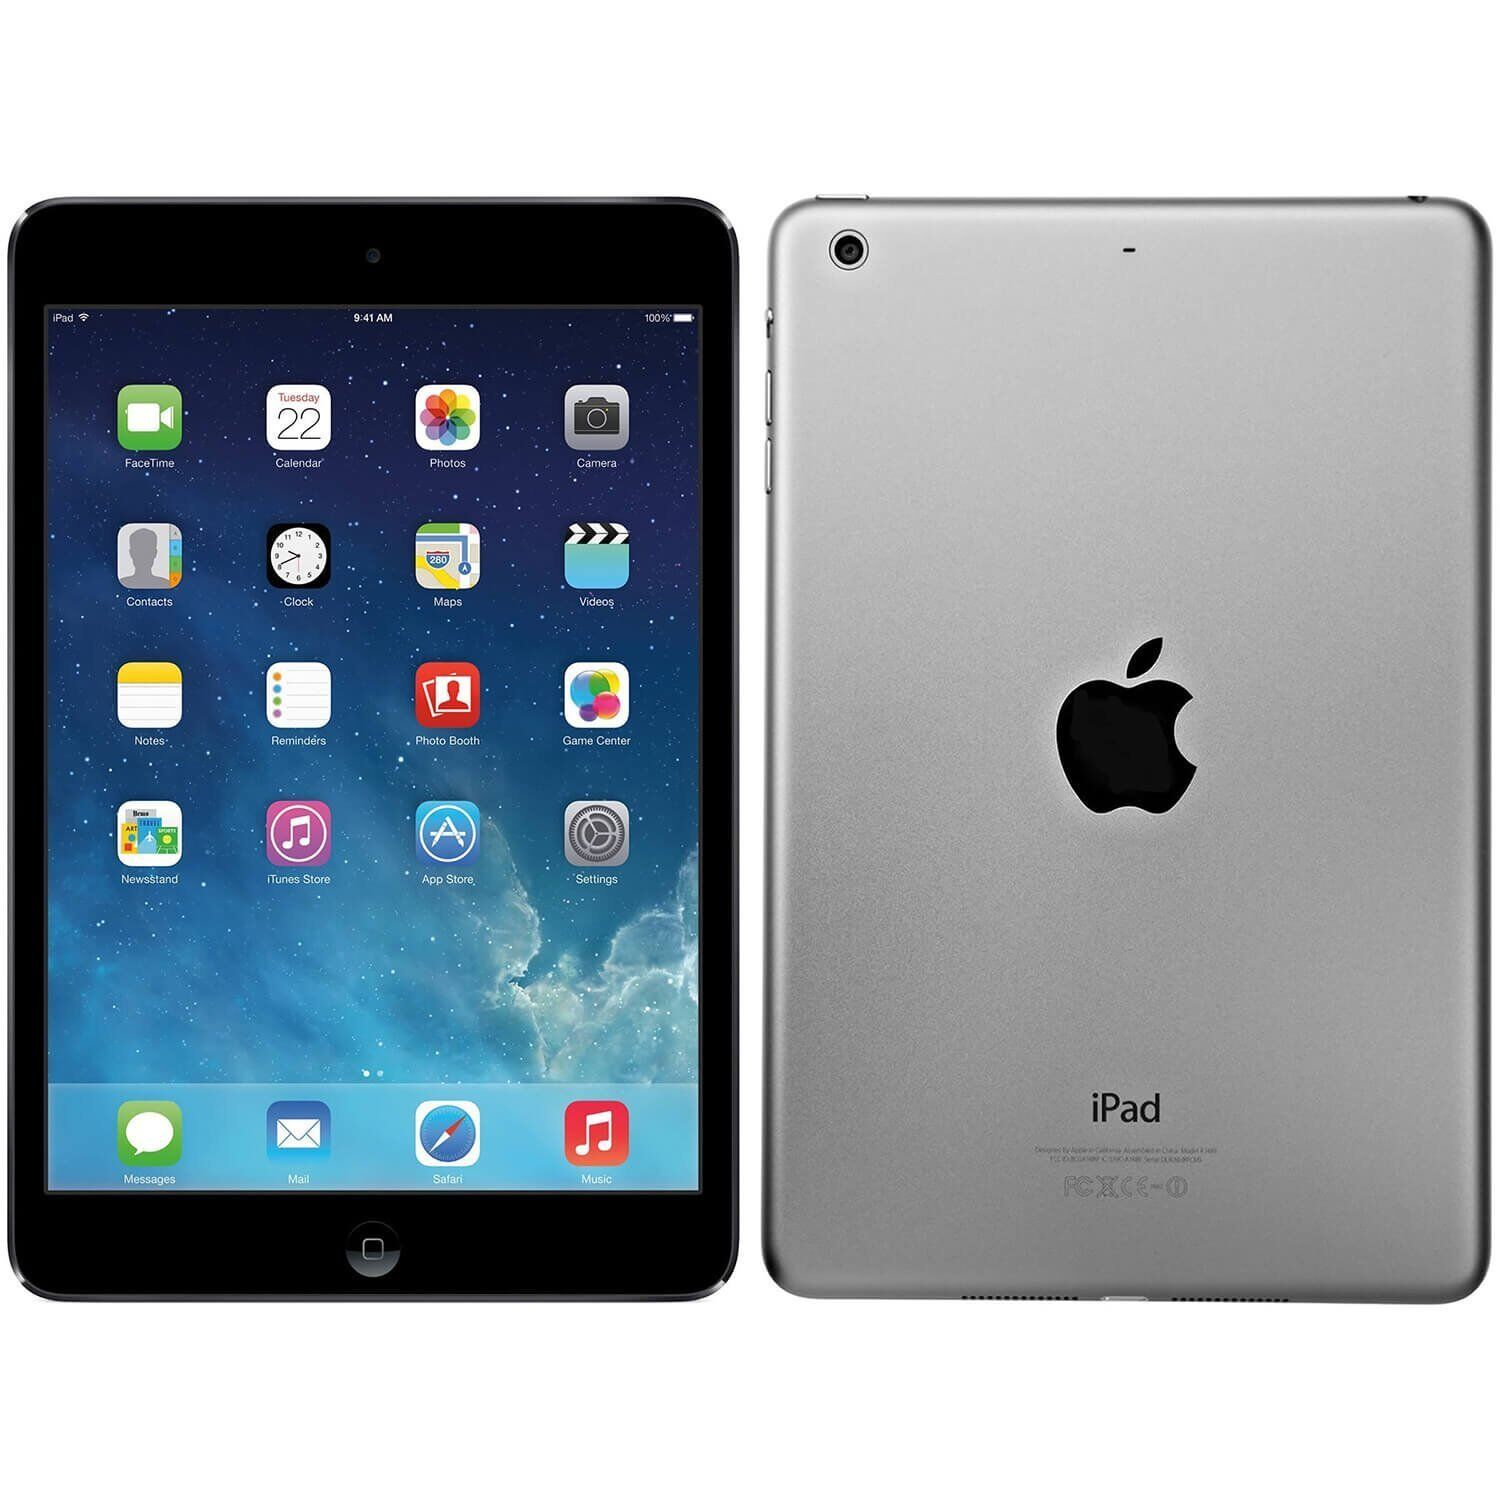 Apple iPad Air (5th Model) ✤ WIFI OR LTE ✤ 16/32/64/128GB Space Gray Silver